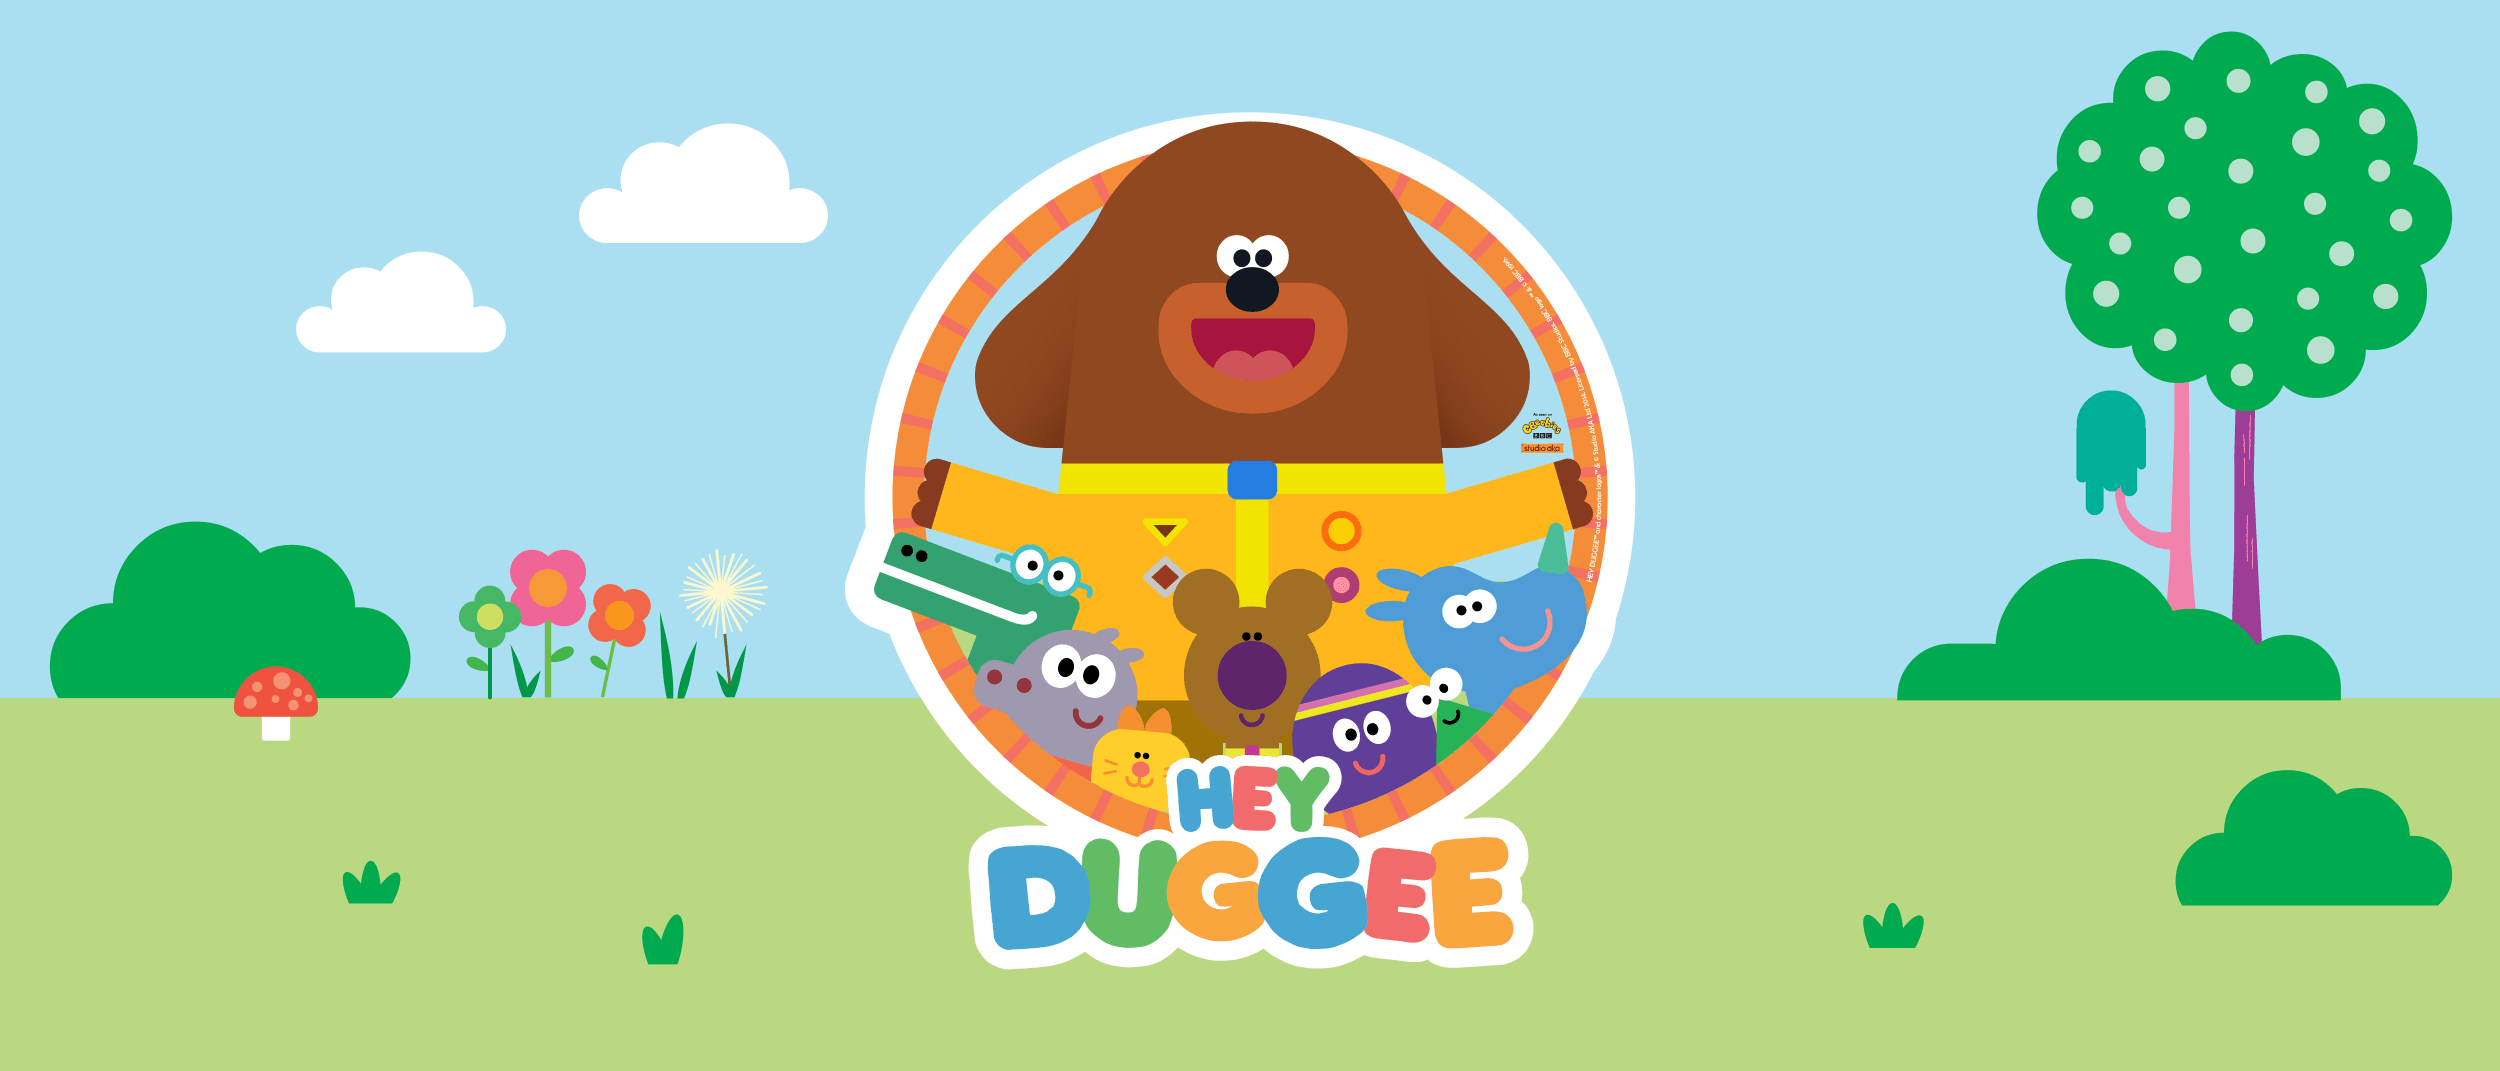 Autism-friendly workshop with Hey Duggee